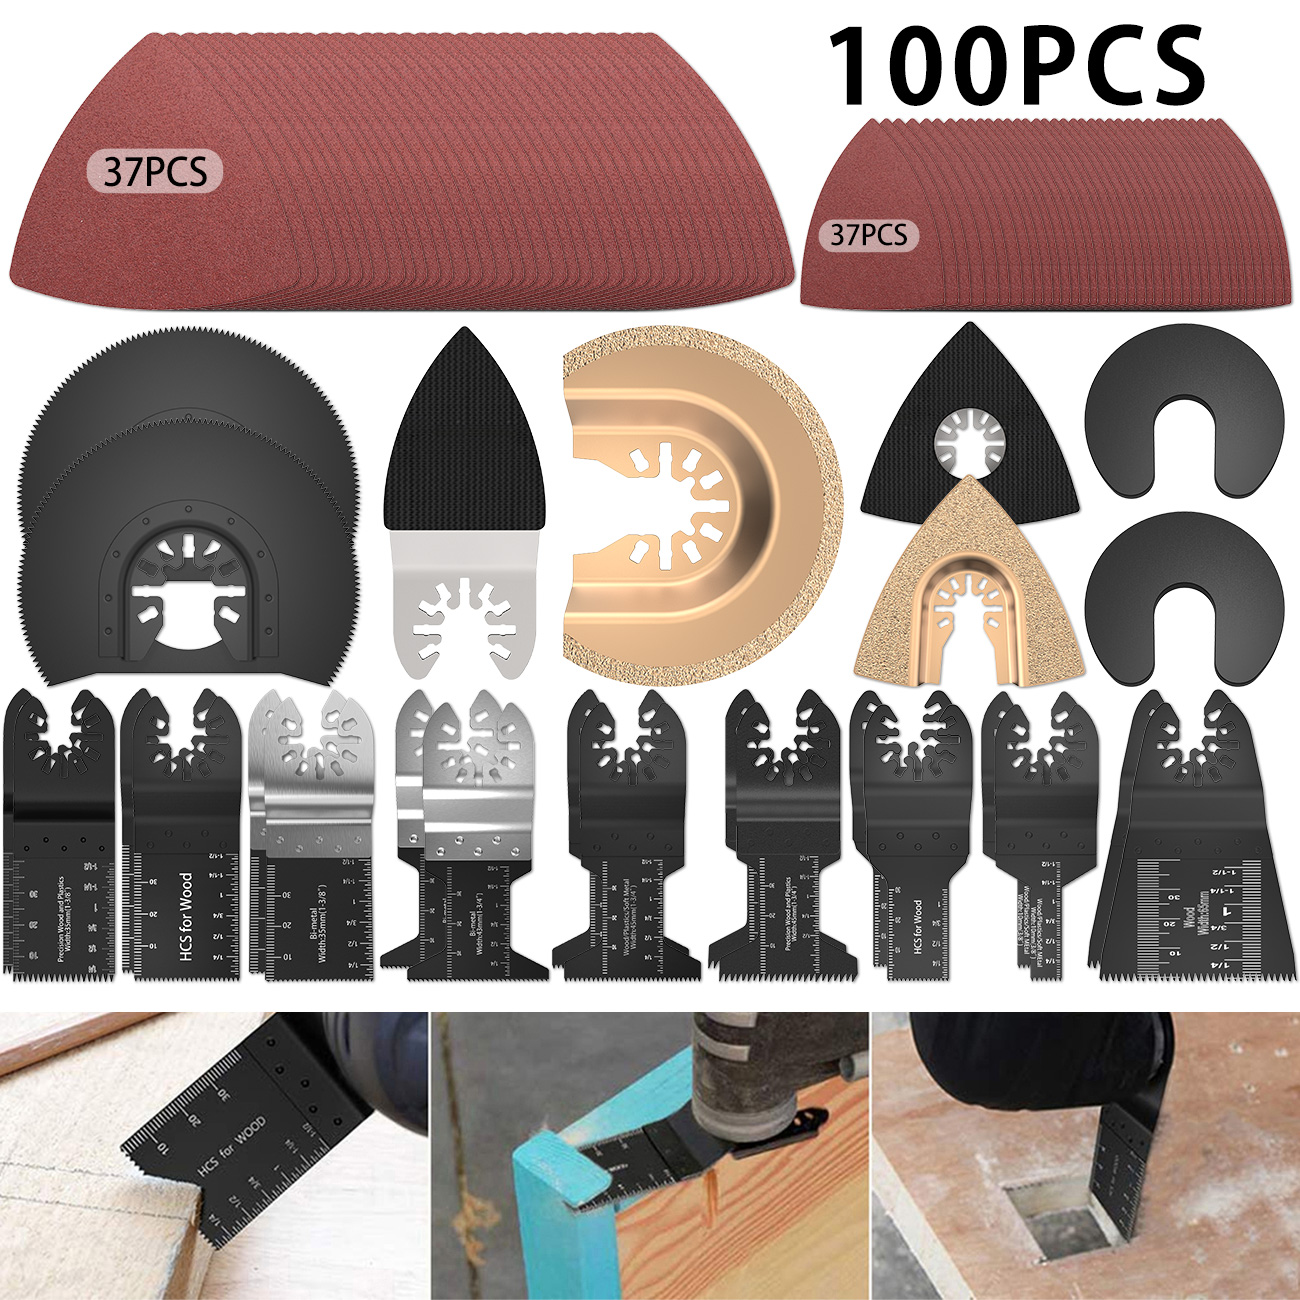 Multitool Blades Oscillating Tool Blades Accessory Quick Release Saw Blade Kit For Metal,Wood And Plastic Cutting,Sanding